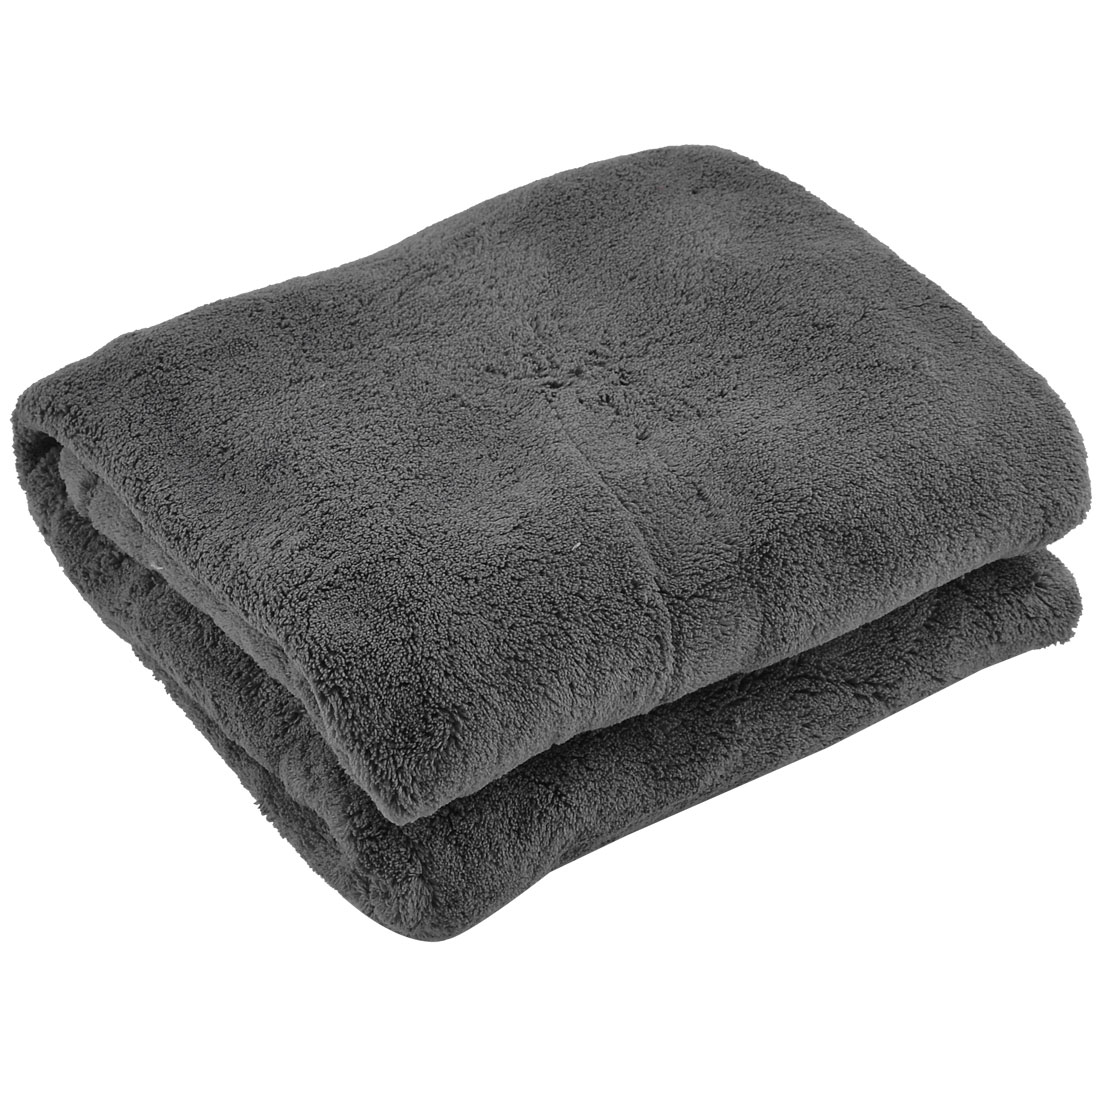 Home Bed Travel Airplane Warm Soft Throw Pure Blanket Rug Plush Quilt Dark Gray